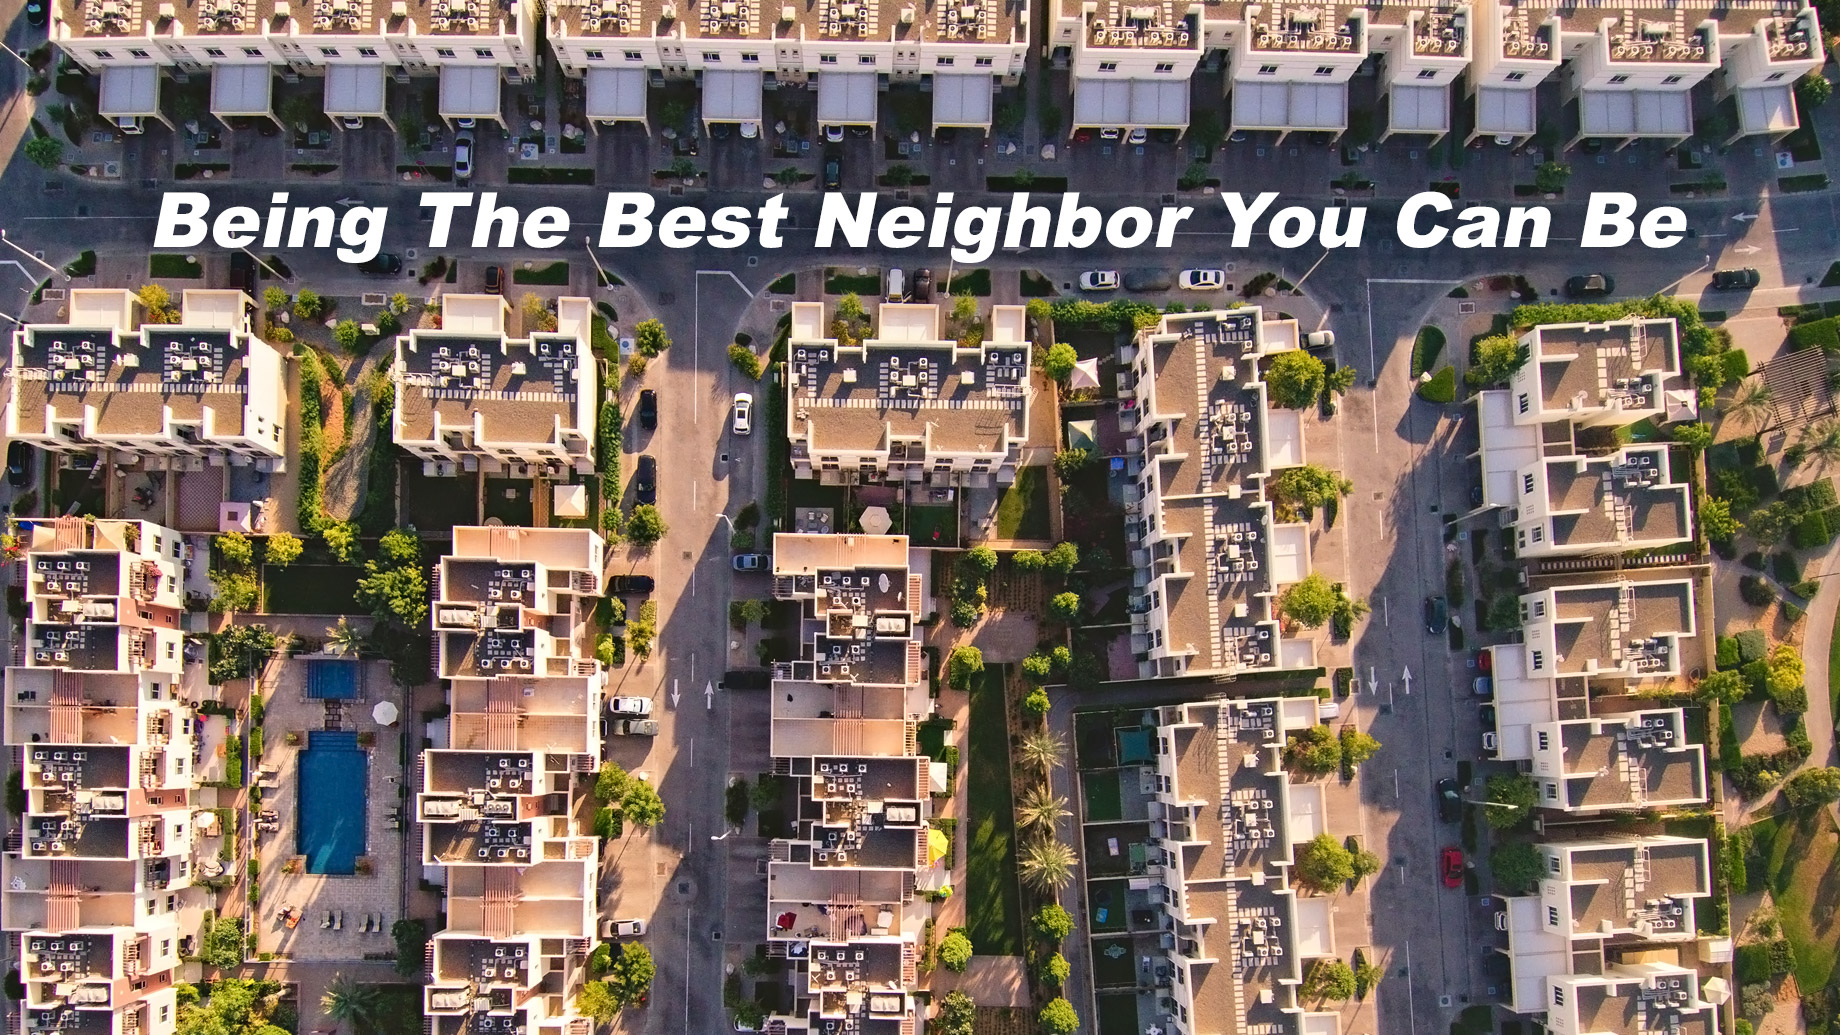 Being The Best Neighbor You Can Be